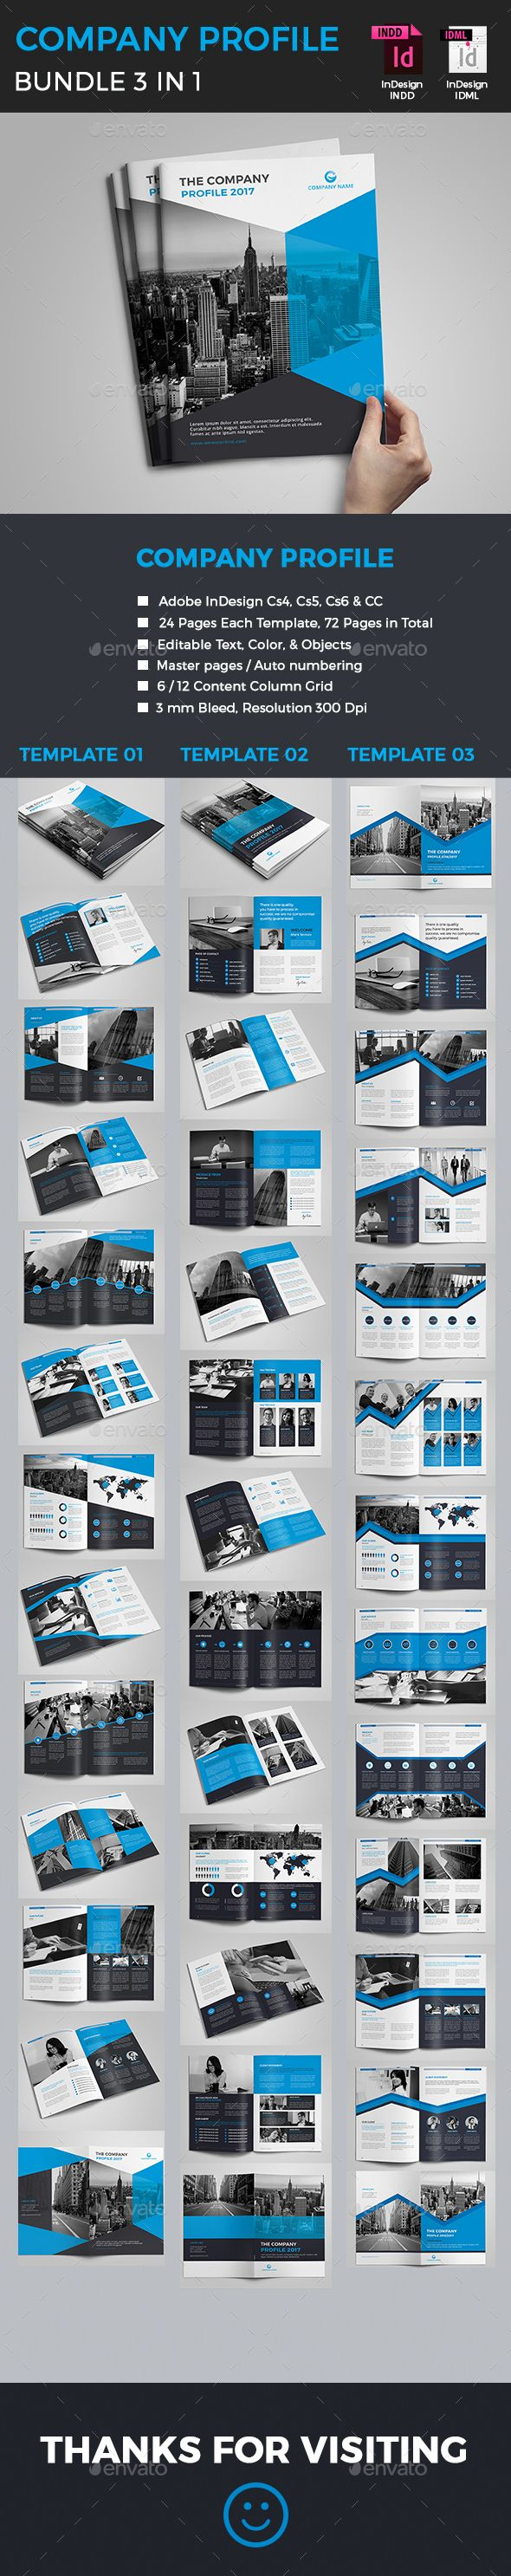 Example Of Company Profile Template Fascinating Company Profile Bundle  Pinterest  Brochure Examples Brochures .